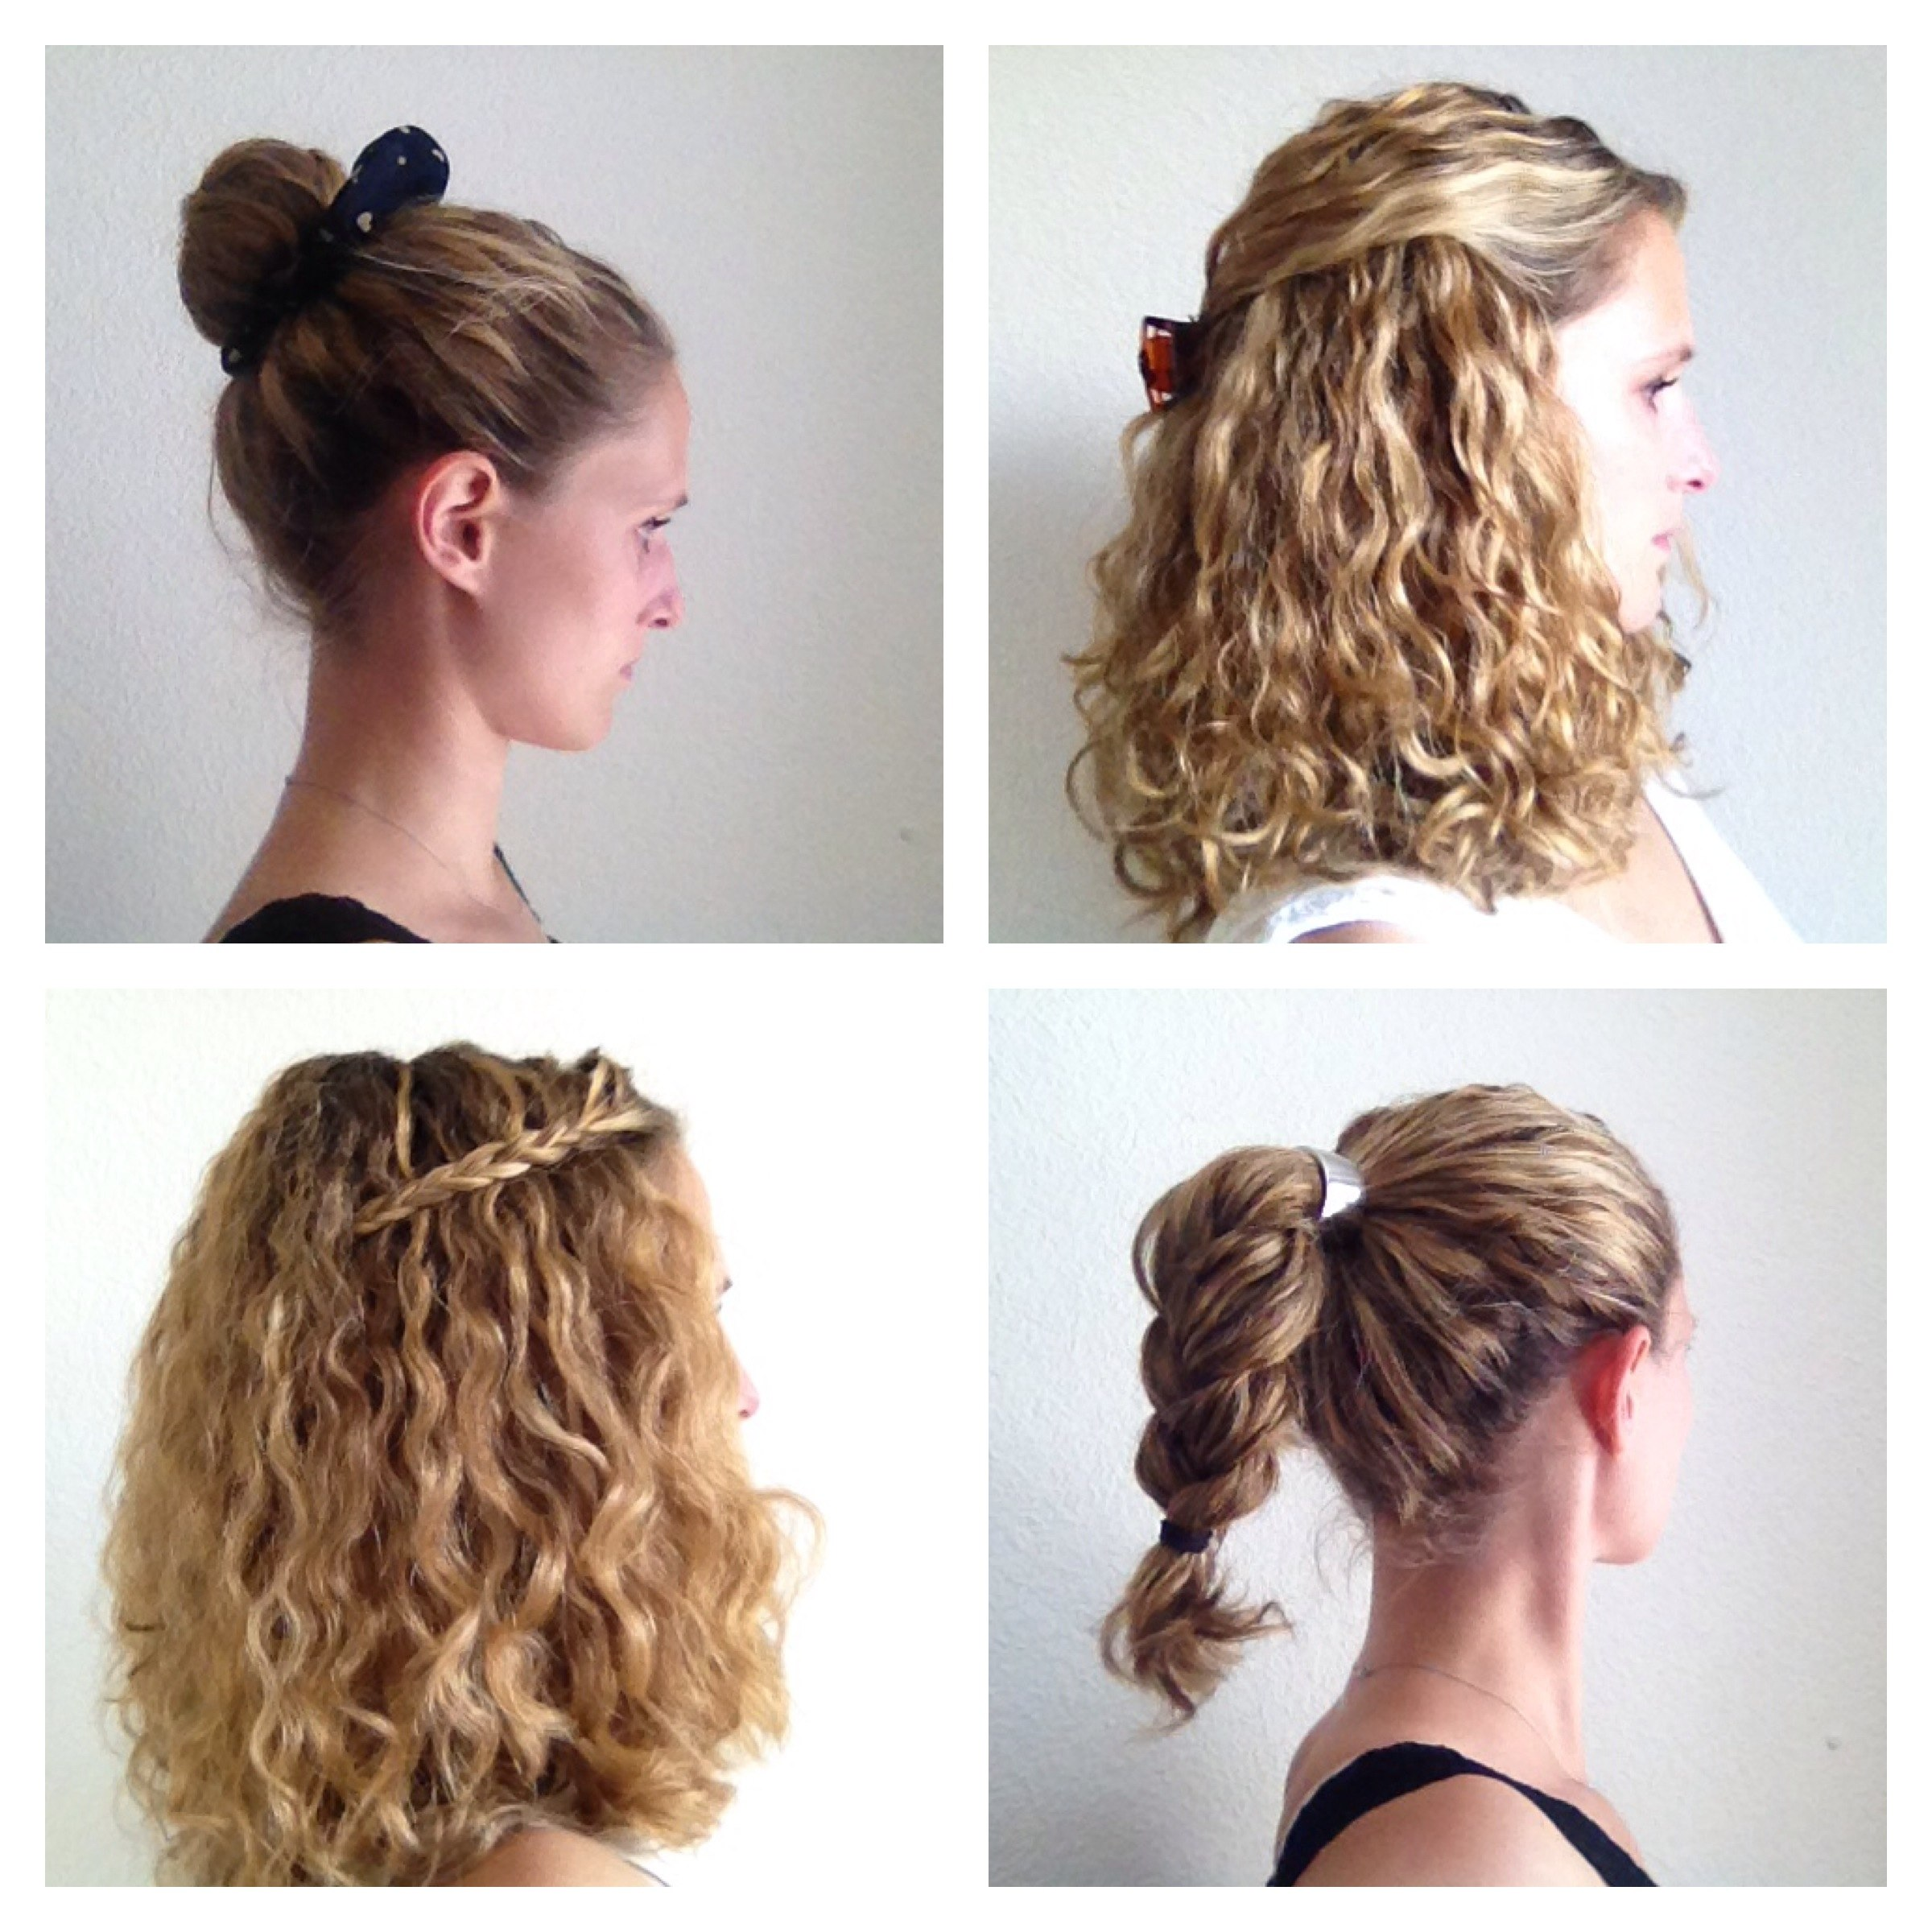 Hair Style For Curly Hair Four Styling Ideas For Curly Hair  Justcurly